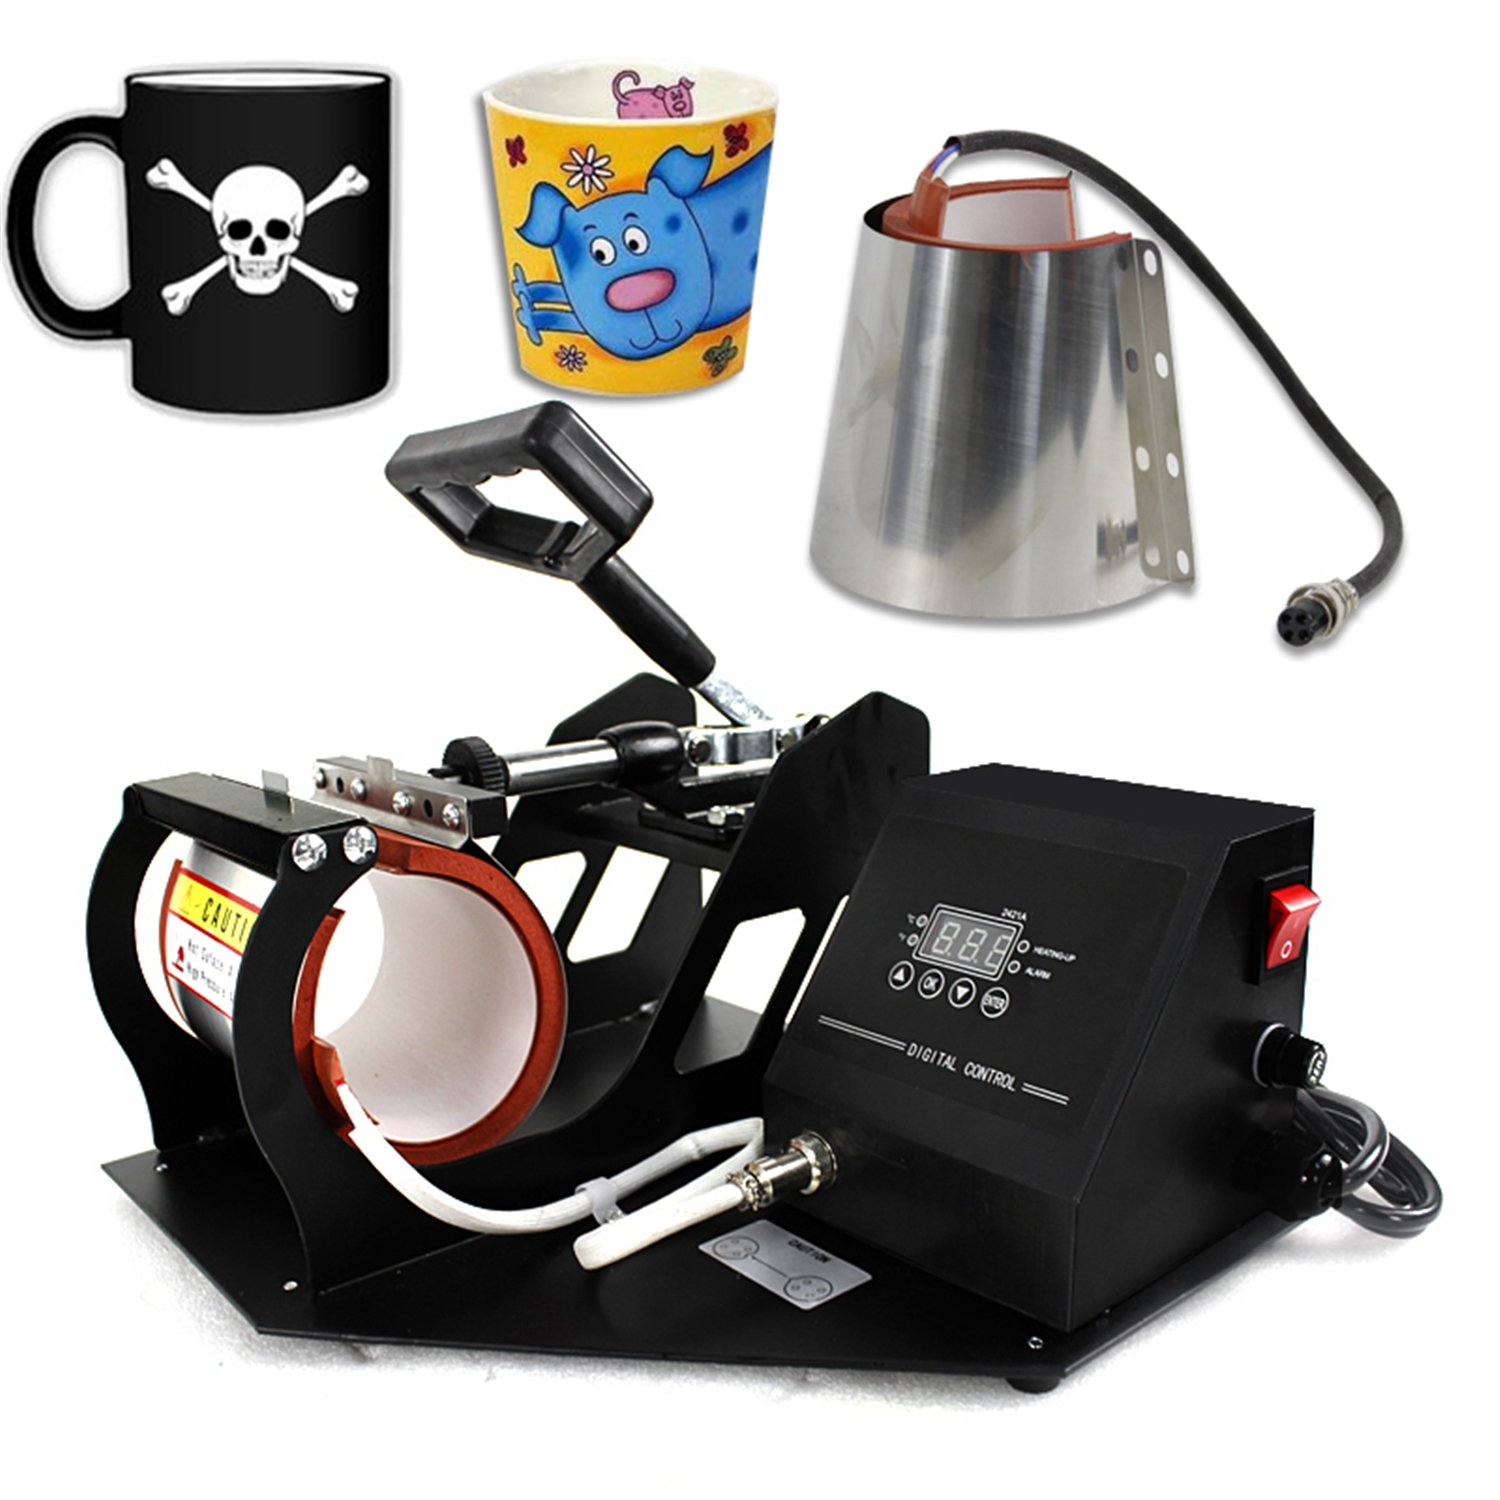 F2C 5 in 1 Professional Digital Transfer Sublimation Swing-away 360-degree Rotation Heat Press Machine Hat/Mug/Plate/Cap/T-shirt Multifunction Black F2C-T31